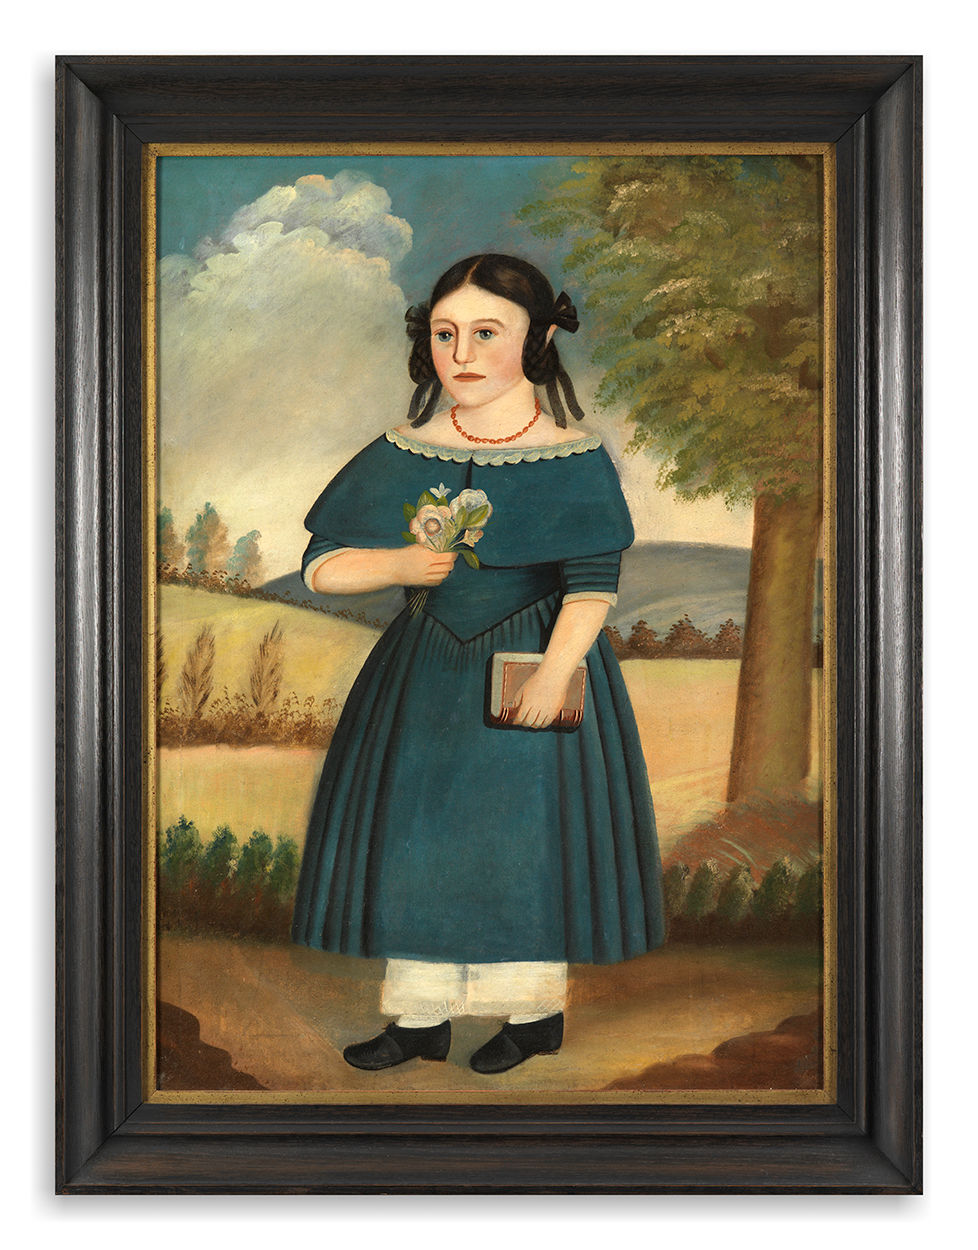 Naïve Portrait of a Girl Wearing a Blue Dress in a Stylised Landscape